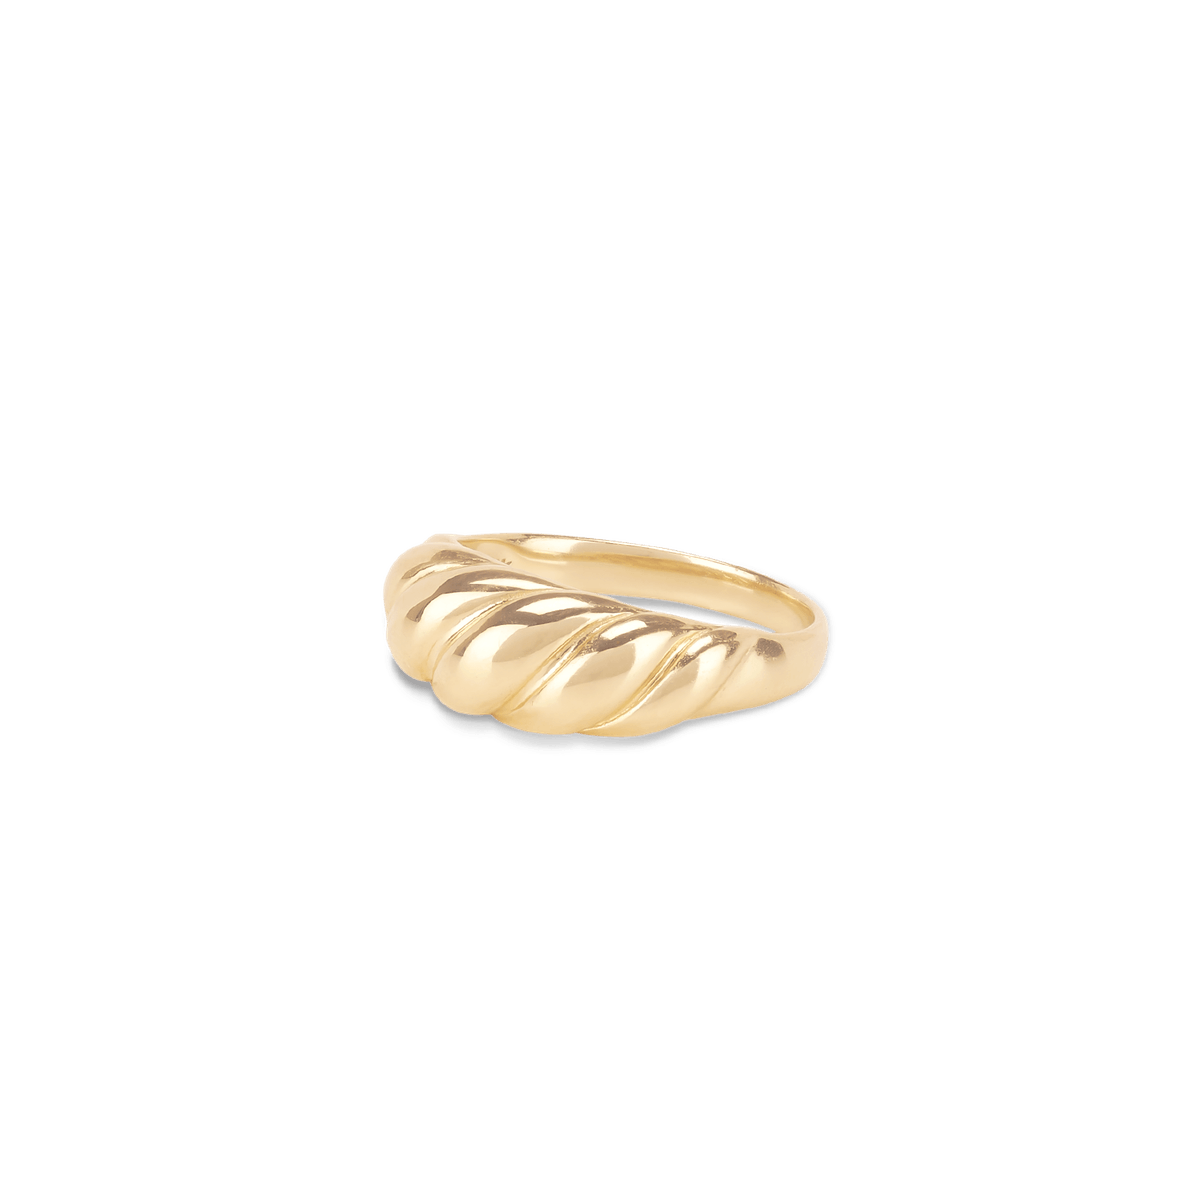 Thin Croissant Dôme Pinky Ring in 14K Gold